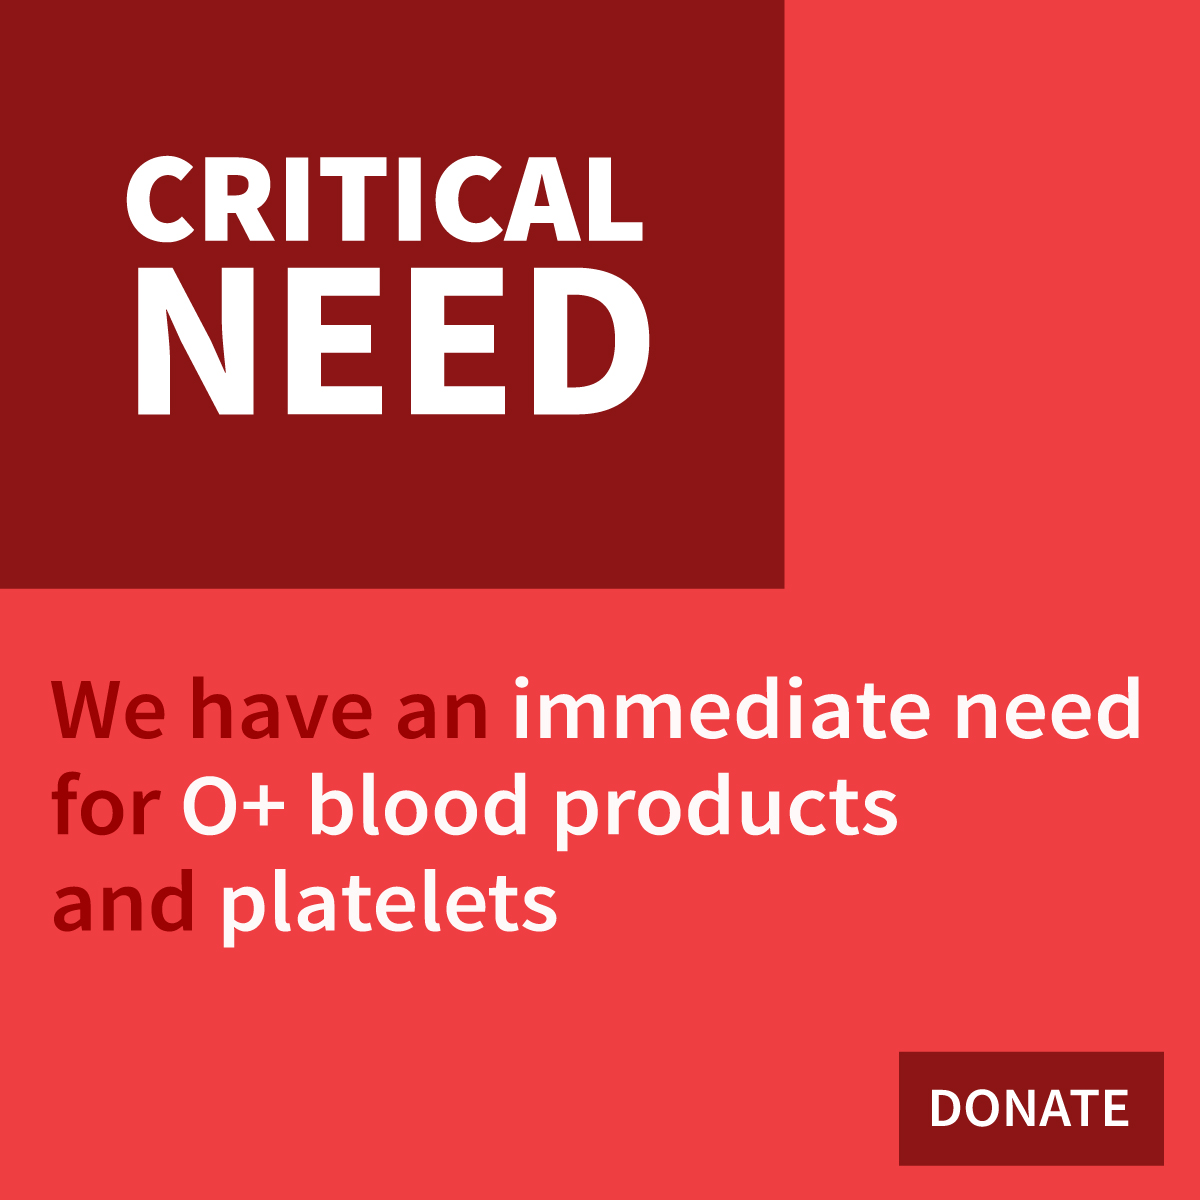 Urgent need for O+ and platelets